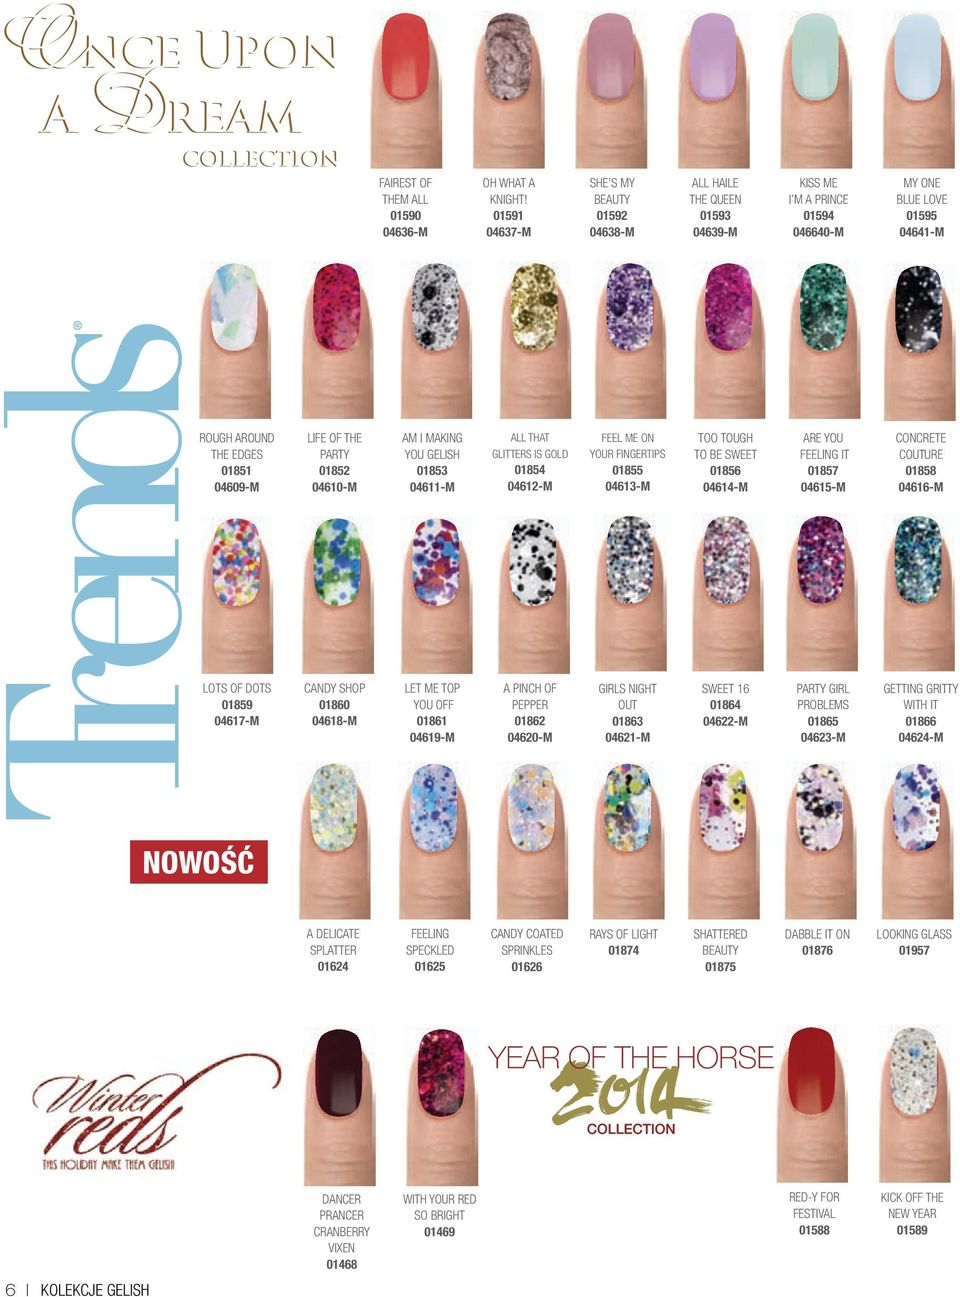 01852 04610-M AM I MAKING YOU GELISH 01853 04611-M ALL THAT GLITTERS IS GOLD 01854 04612-M FEEL ME ON YOUR FINGERTIPS 01855 04613-M TOO TOUGH TO BE SWEET 01856 04614-M ARE YOU FEELING IT 01857